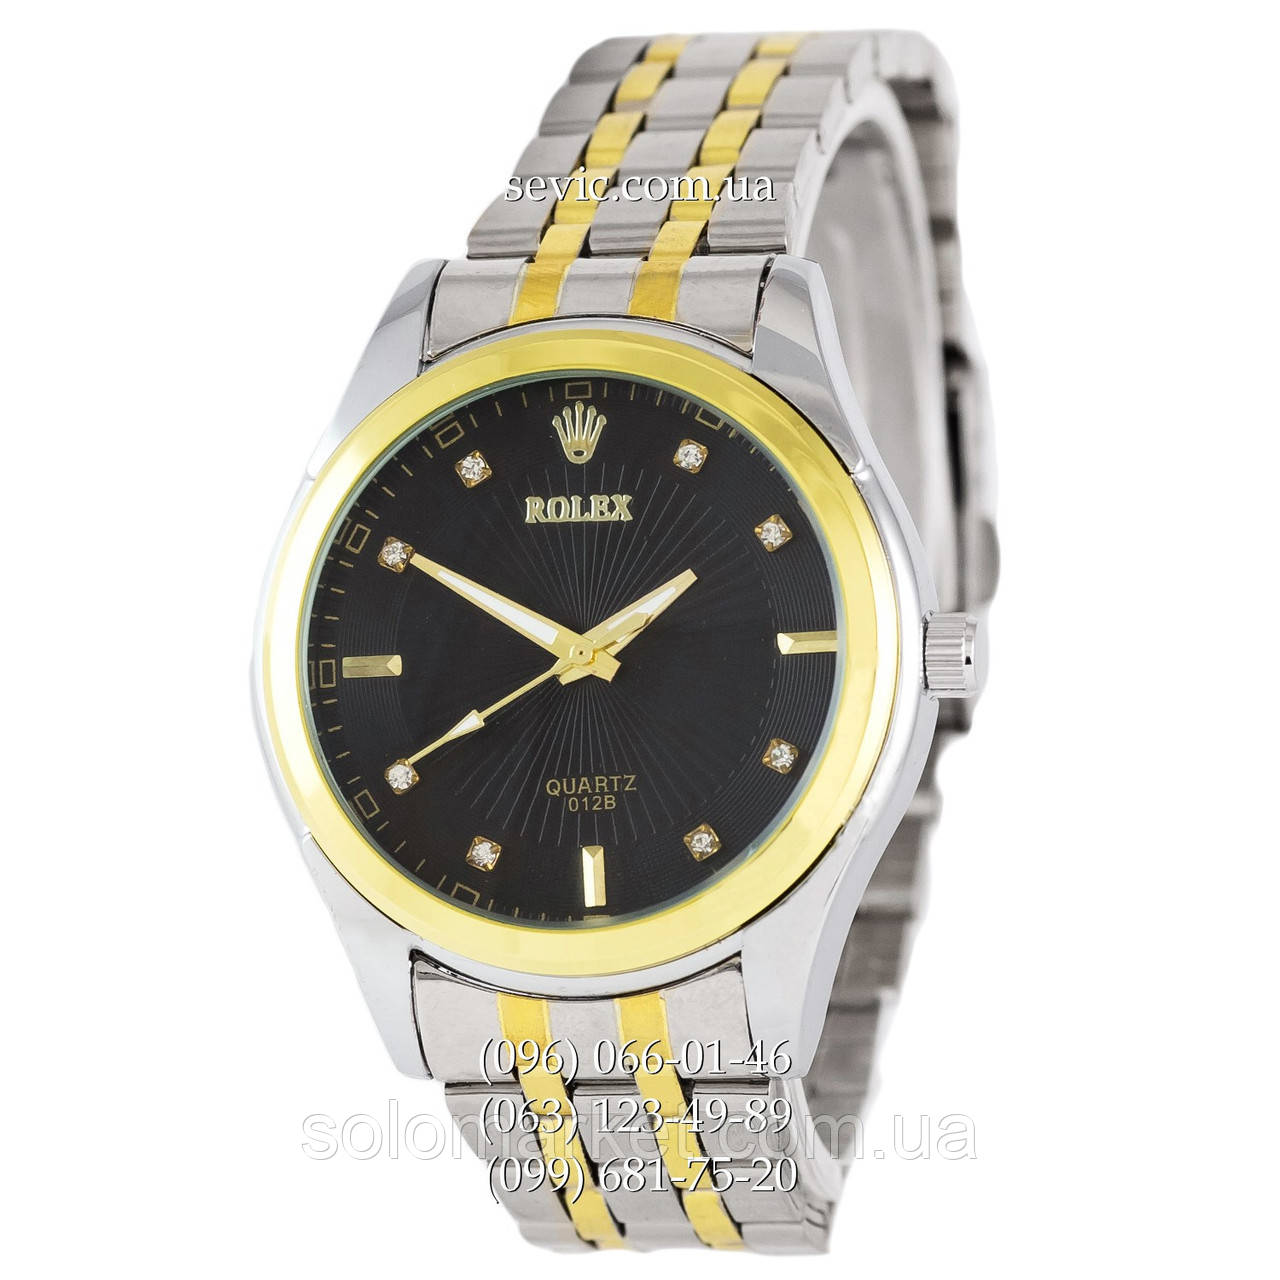 5a3d0152491d Наручные часы Rolex Quartz 012B Crystals Silver-Gold Black (реплика) -  Интернет